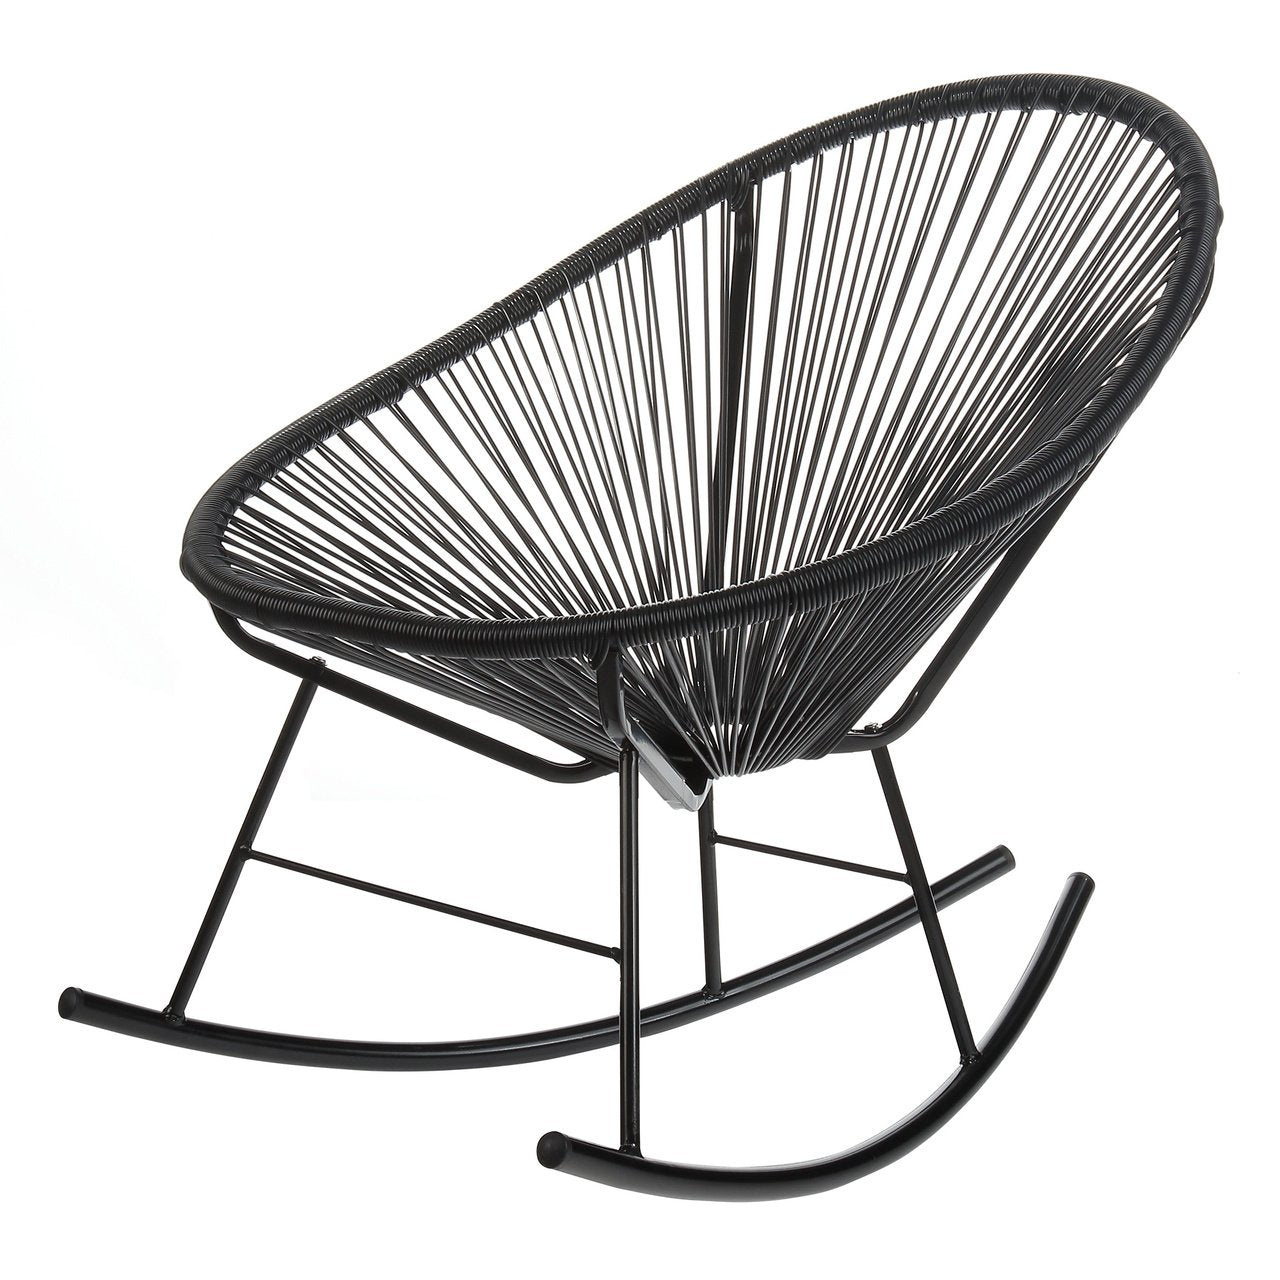 Acapulco Rocking Chair - Black